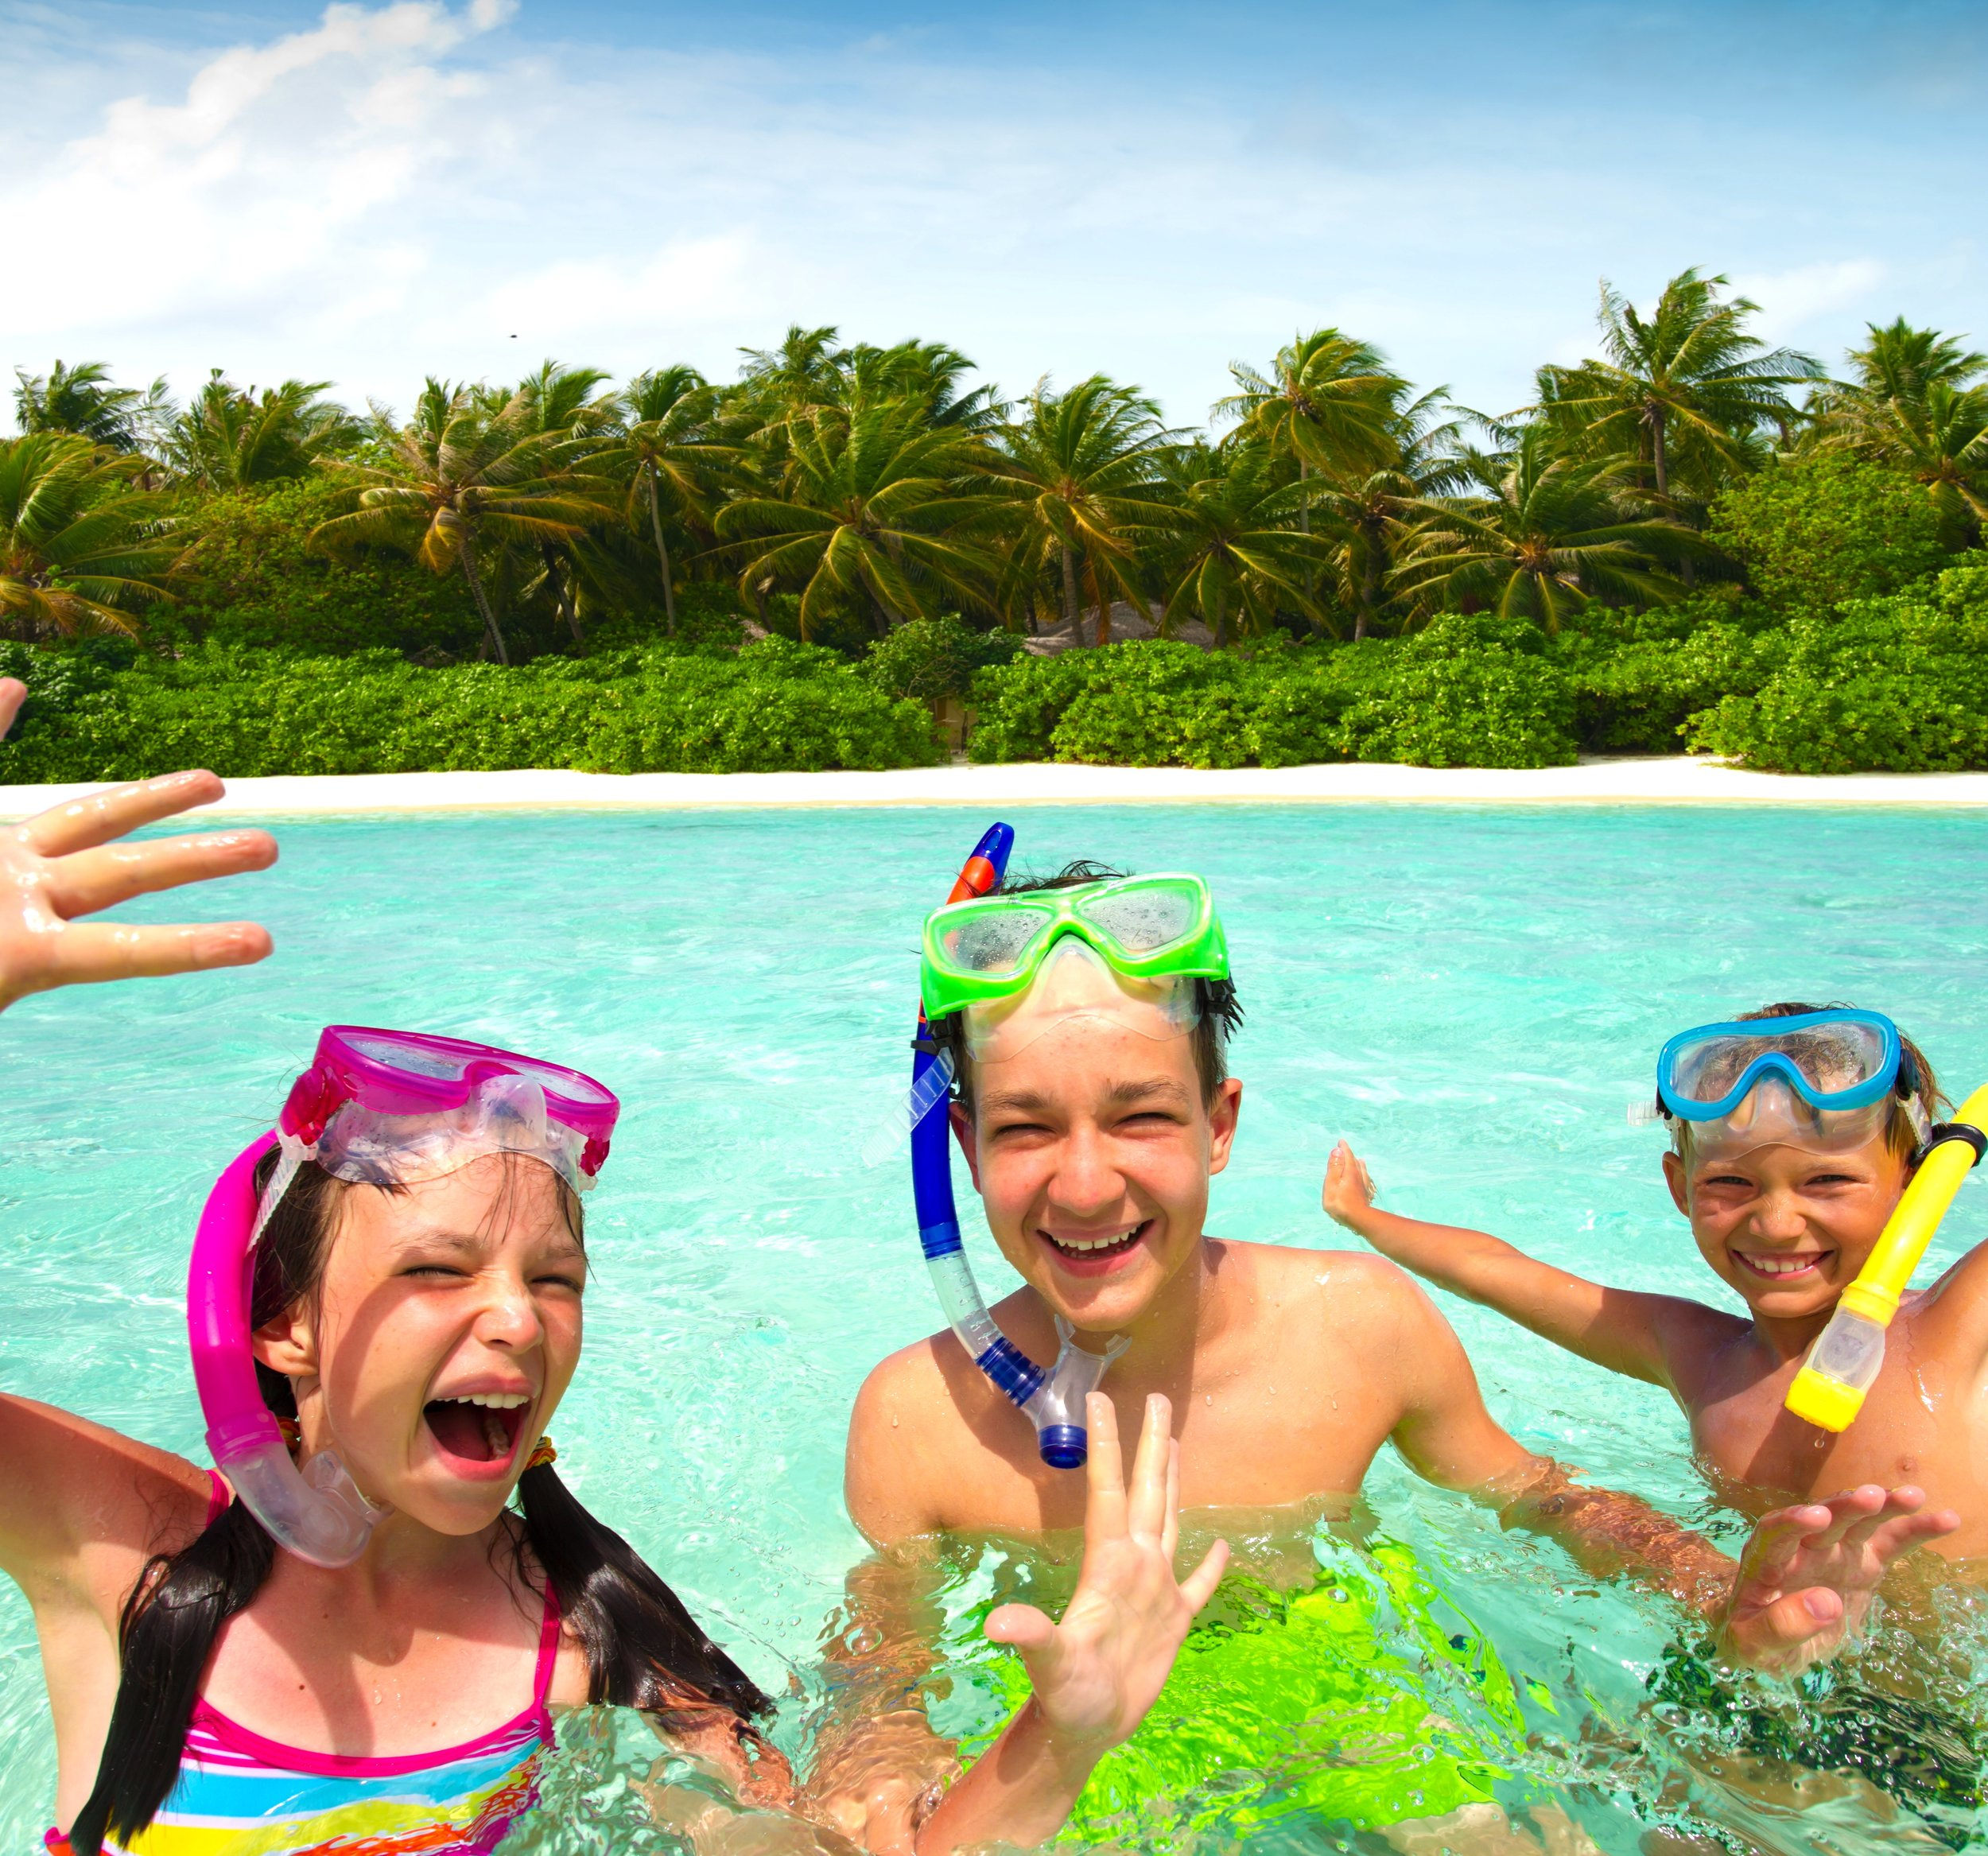 Kids are so happy in the Maldives - who wouldn't be!